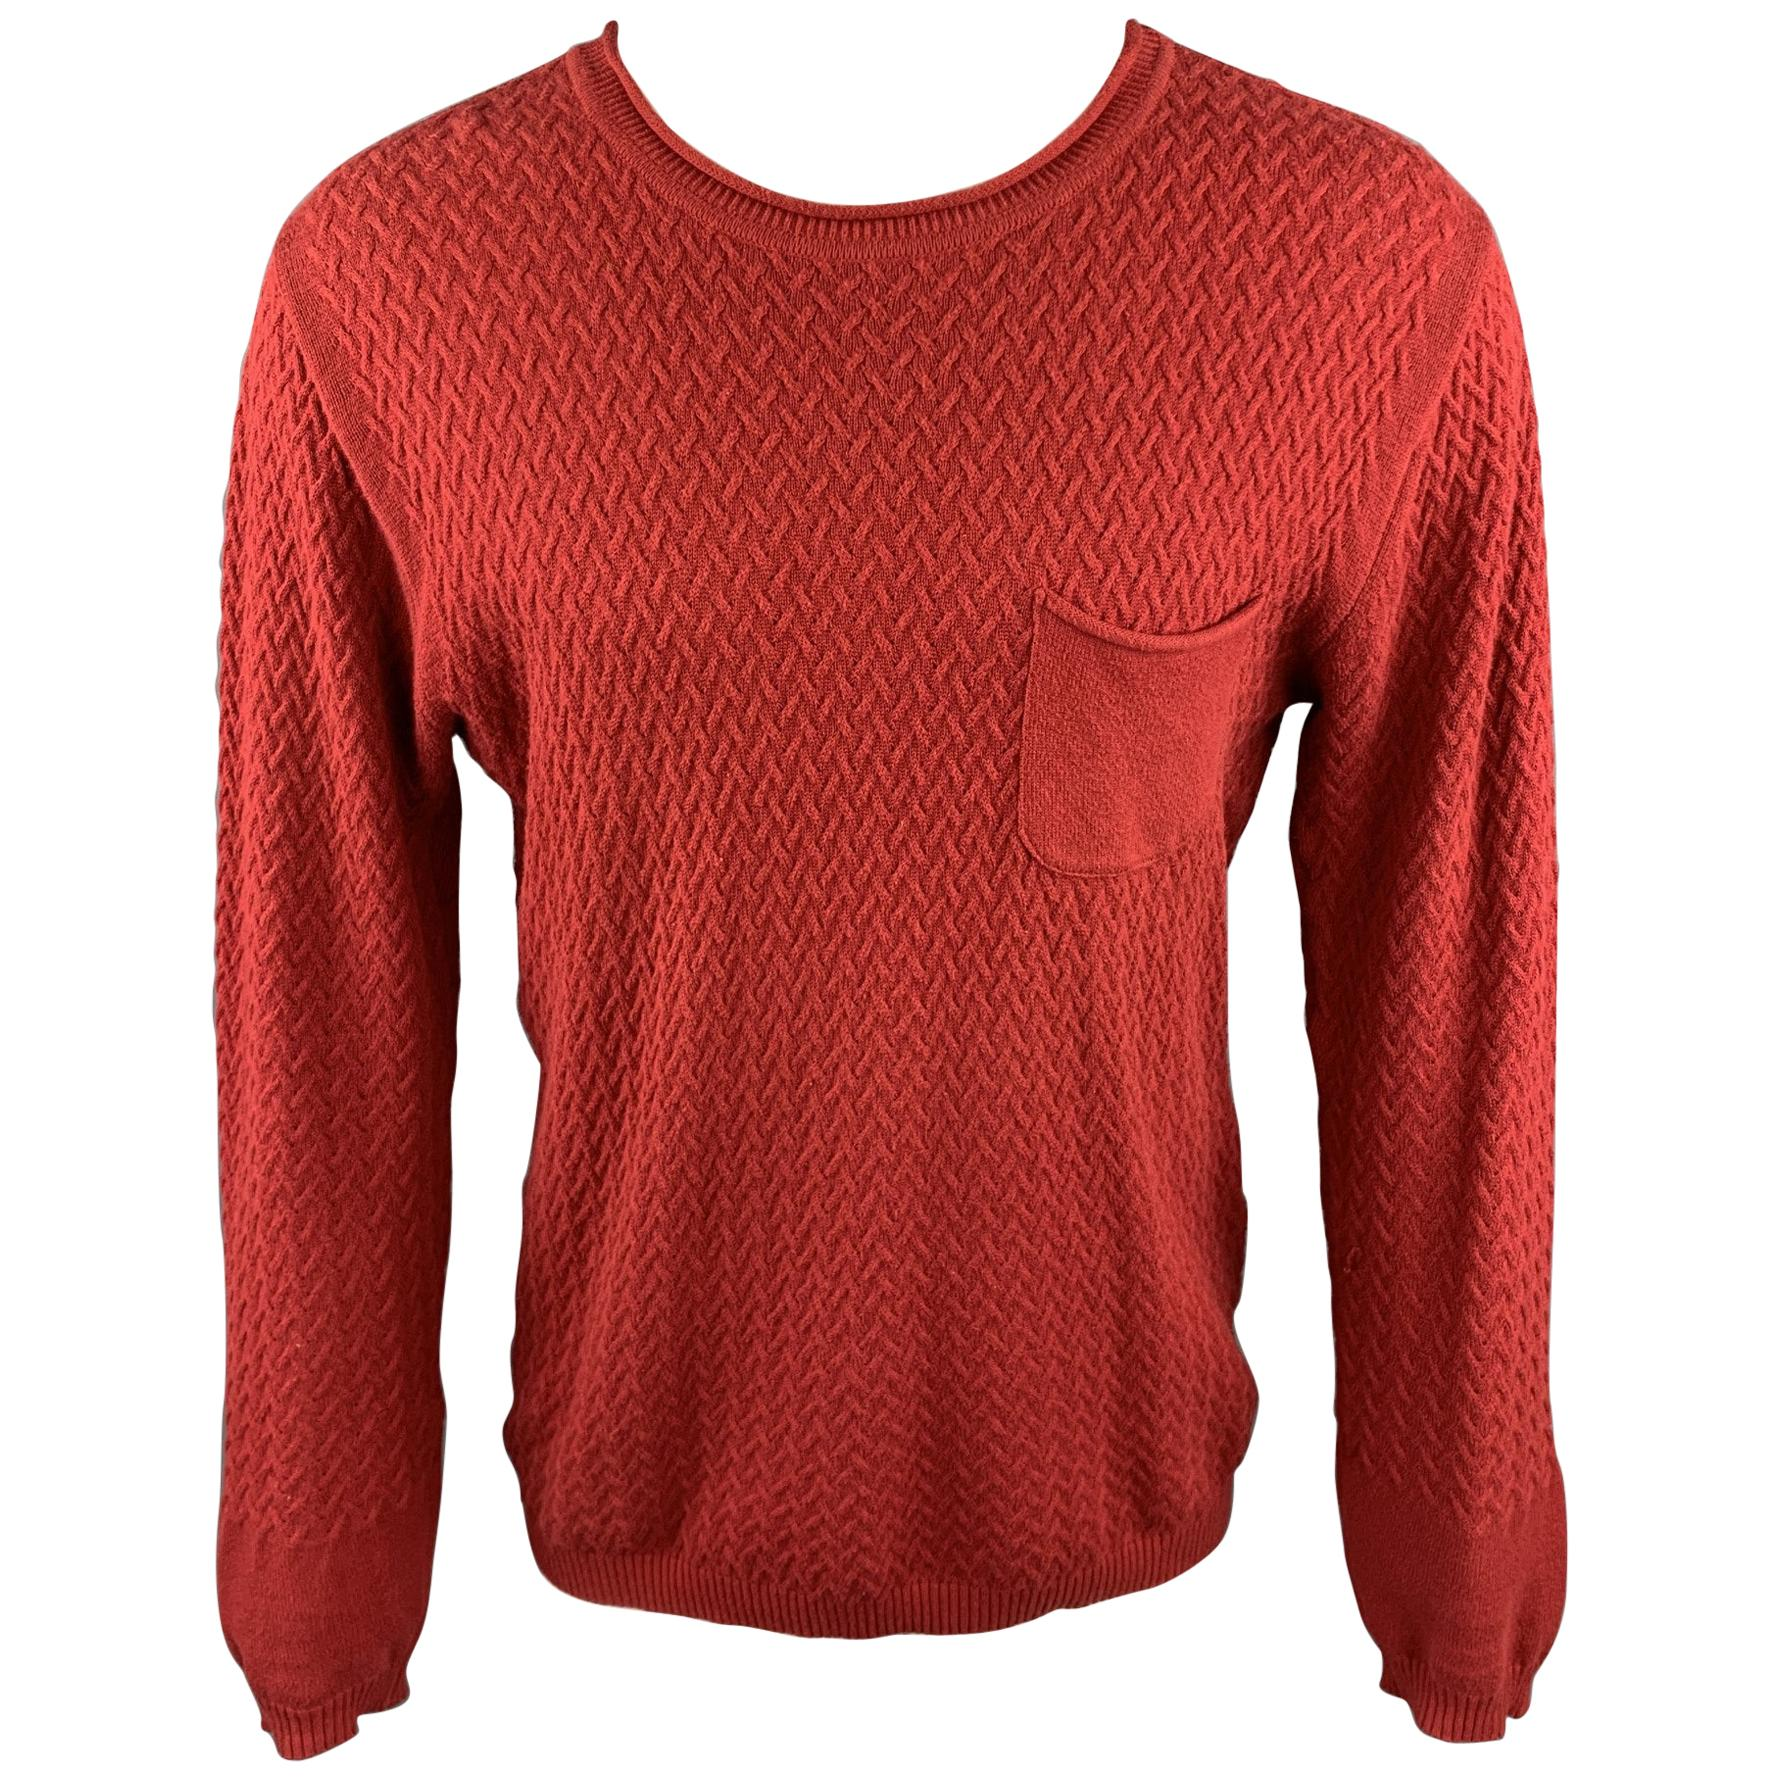 OLIVER SPENCER Size M Red Knitted Cotton Crew-Neck Pullover